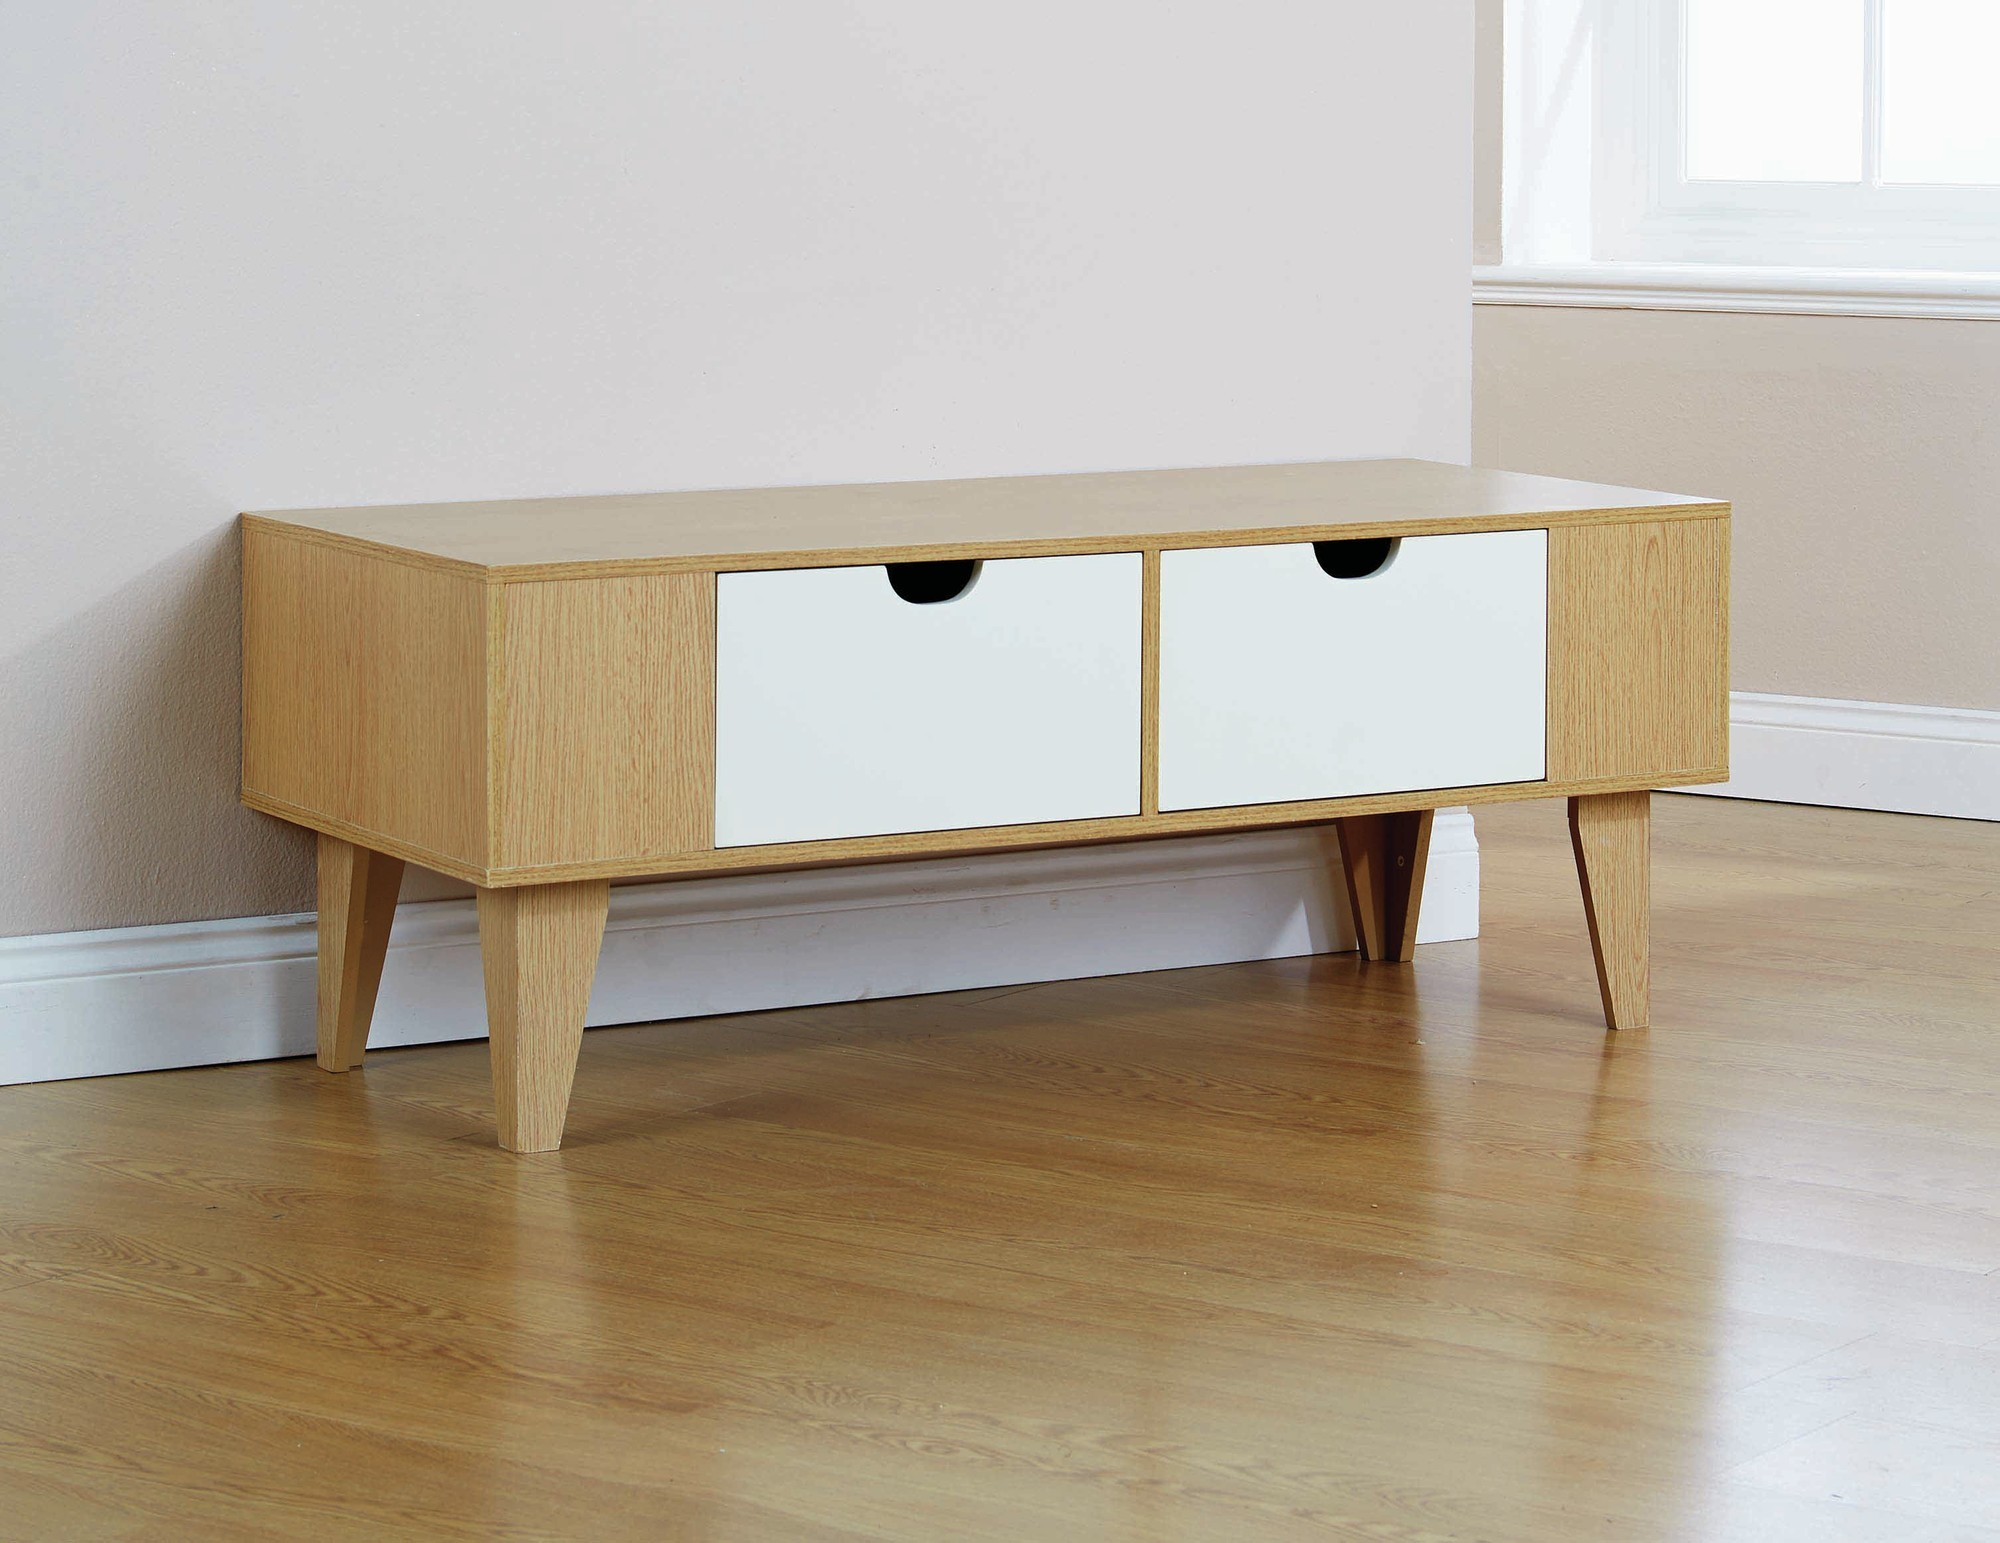 New retro oak coffee table ebay for Coffee tables ebay australia